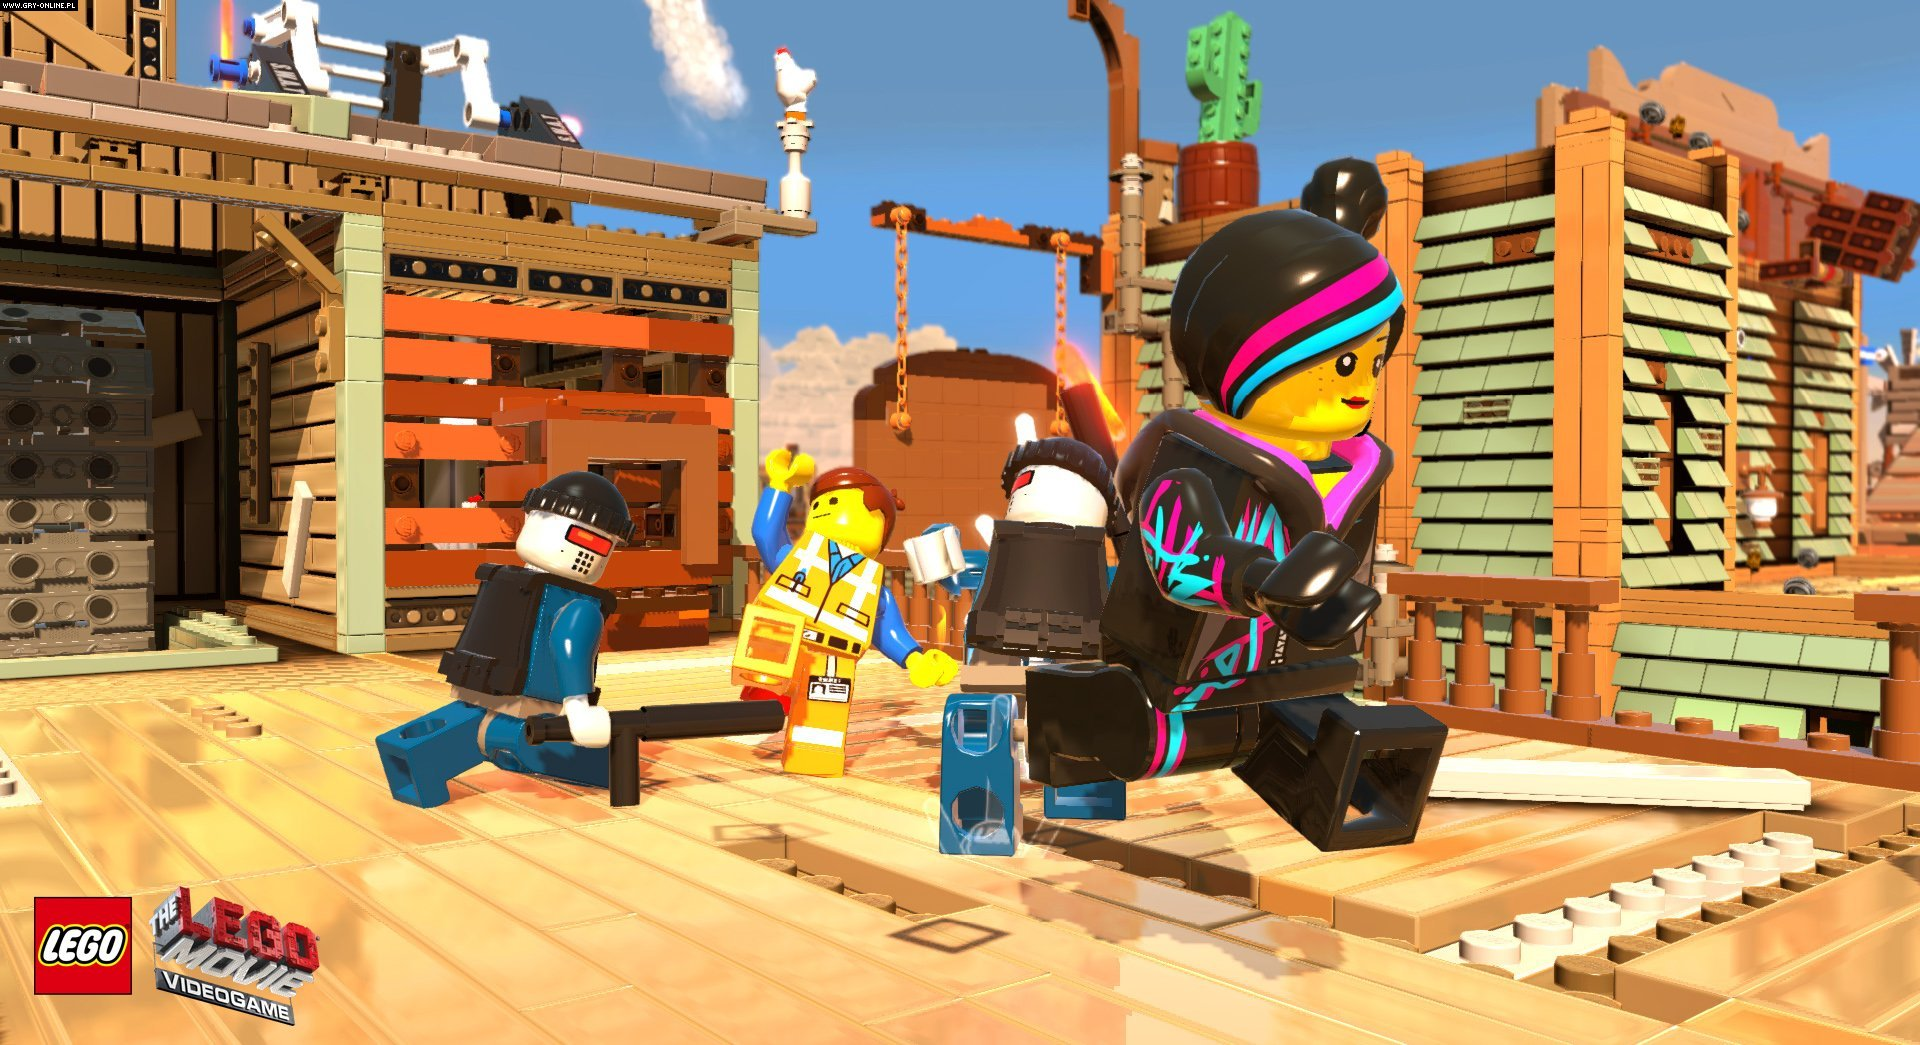 LEGO Przygoda gra wideo PC, X360, PS3, PS4, XONE Gry Screen 8/12, TT Fusion, Warner Bros Interactive Entertainment